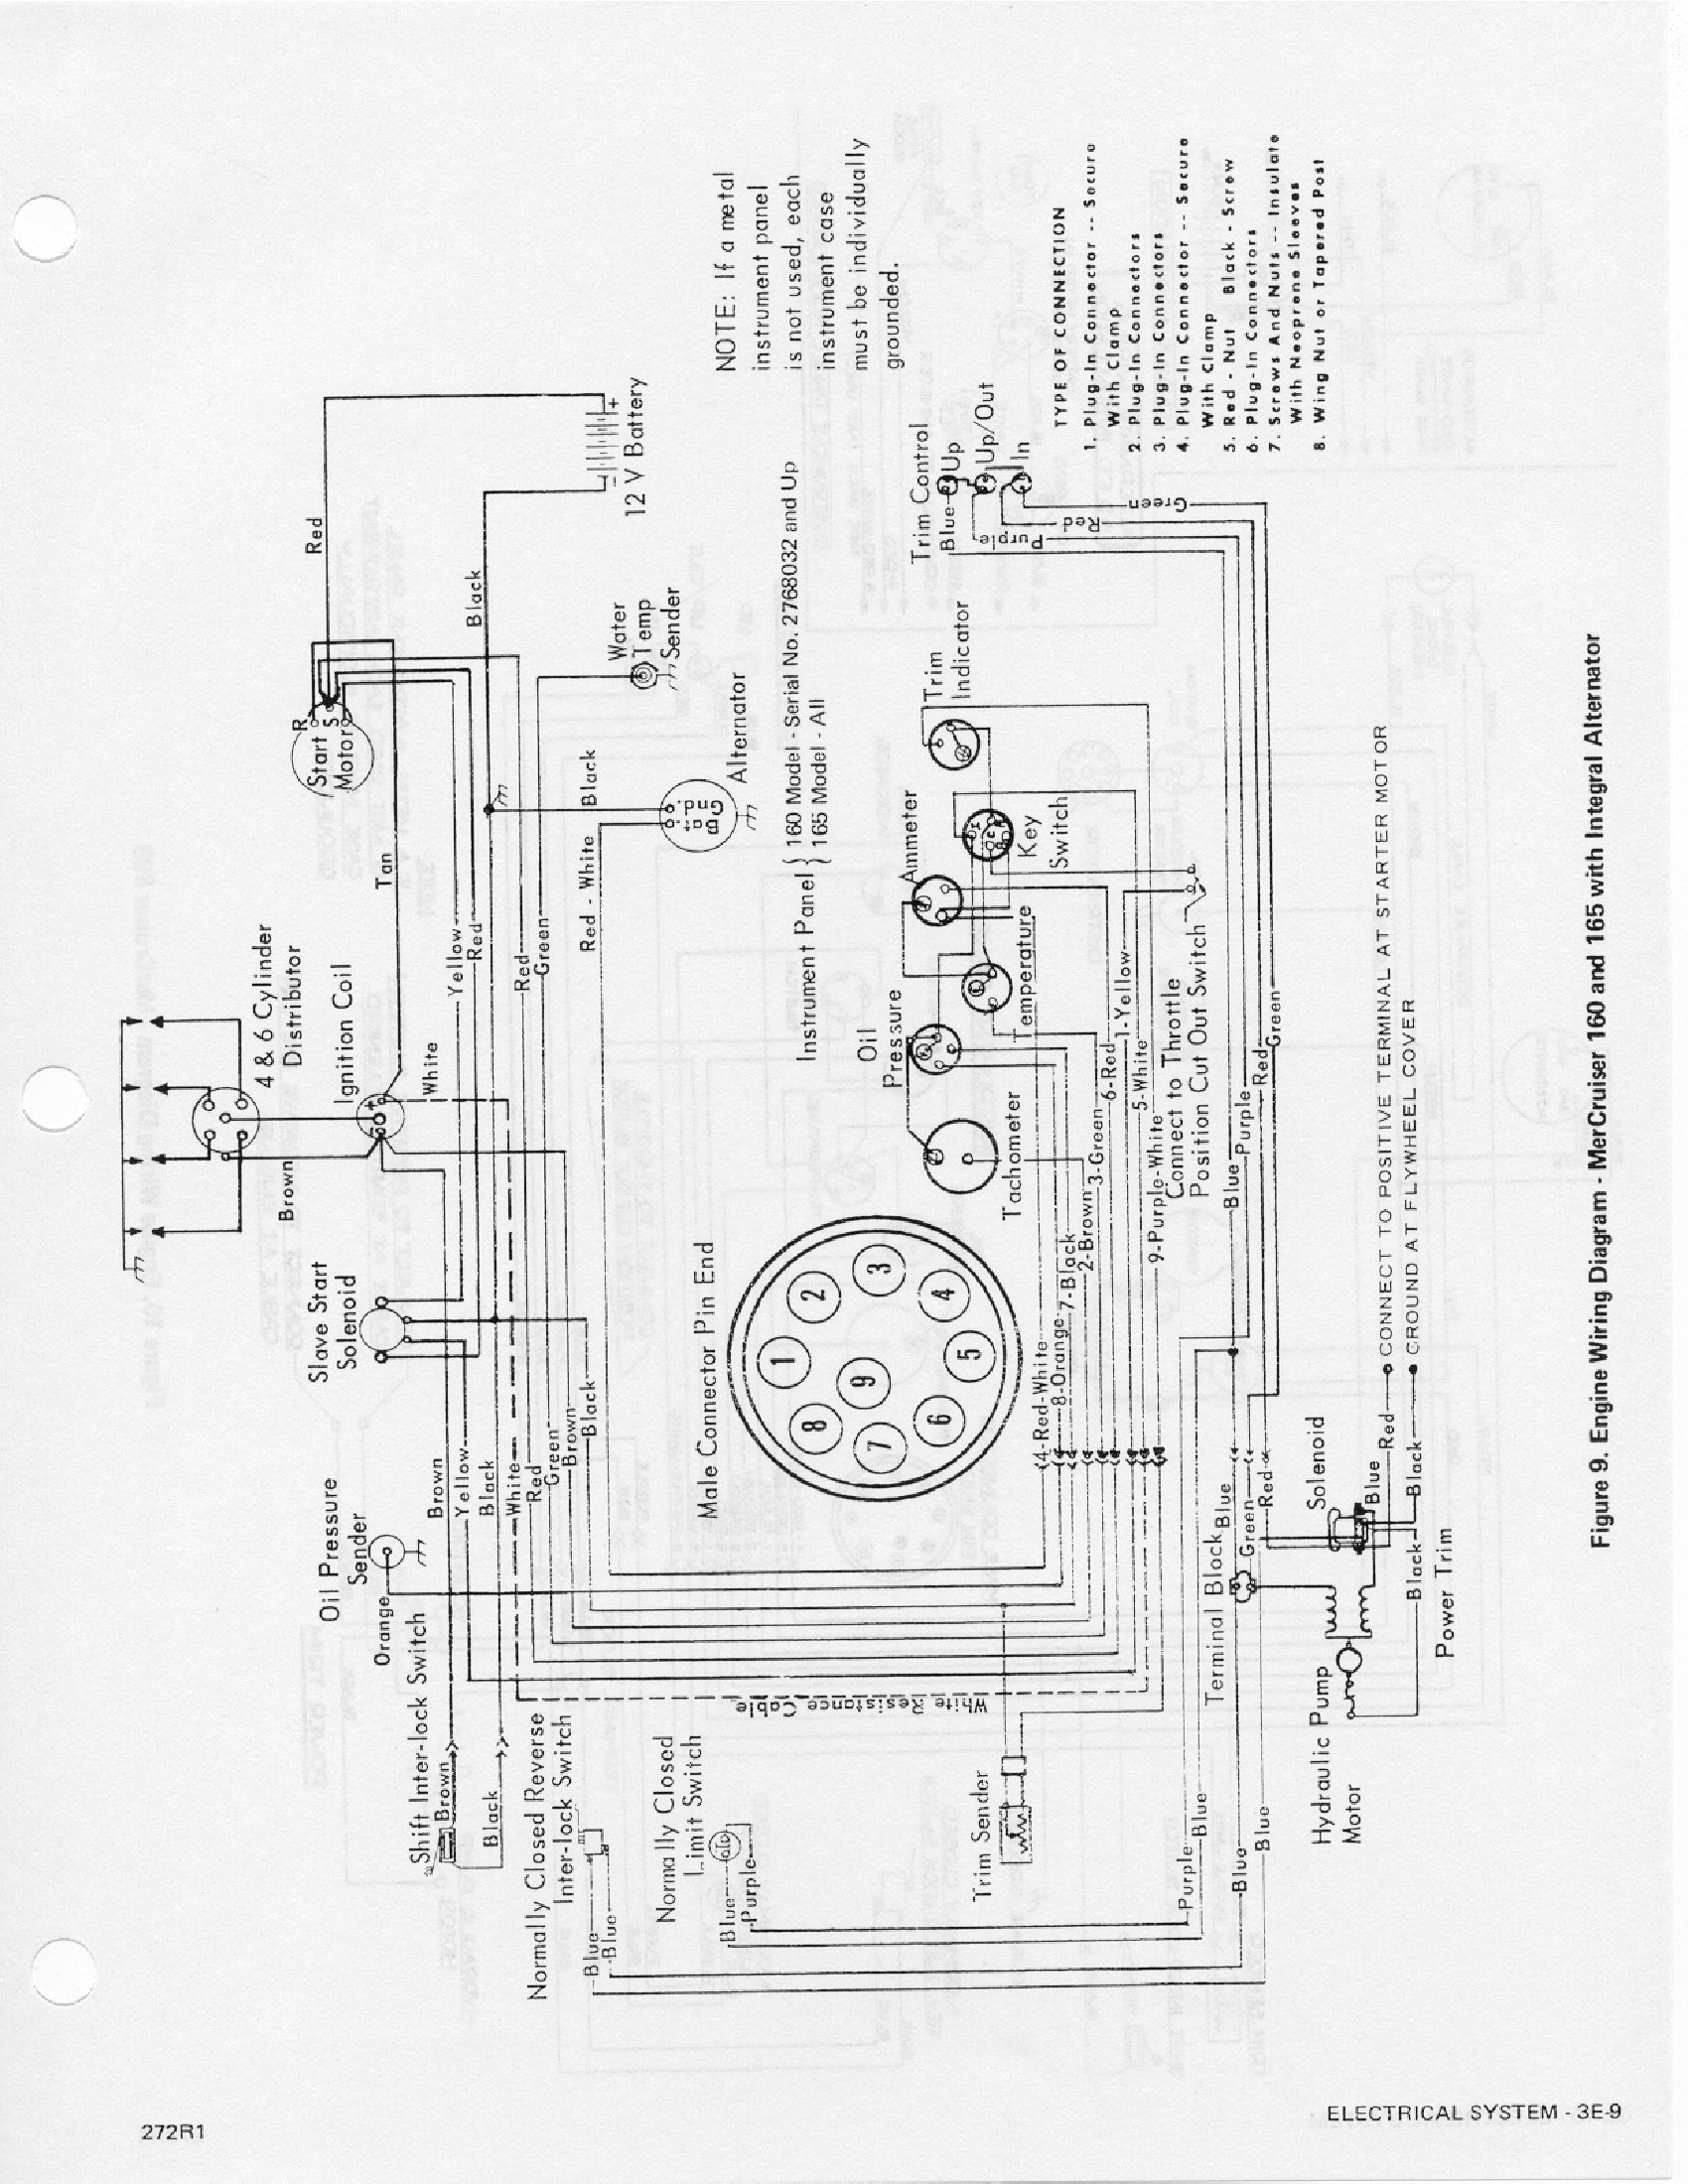 140 mercruiser wiring diagram ce 0414  140 mercruiser wiring diagram  ce 0414  140 mercruiser wiring diagram